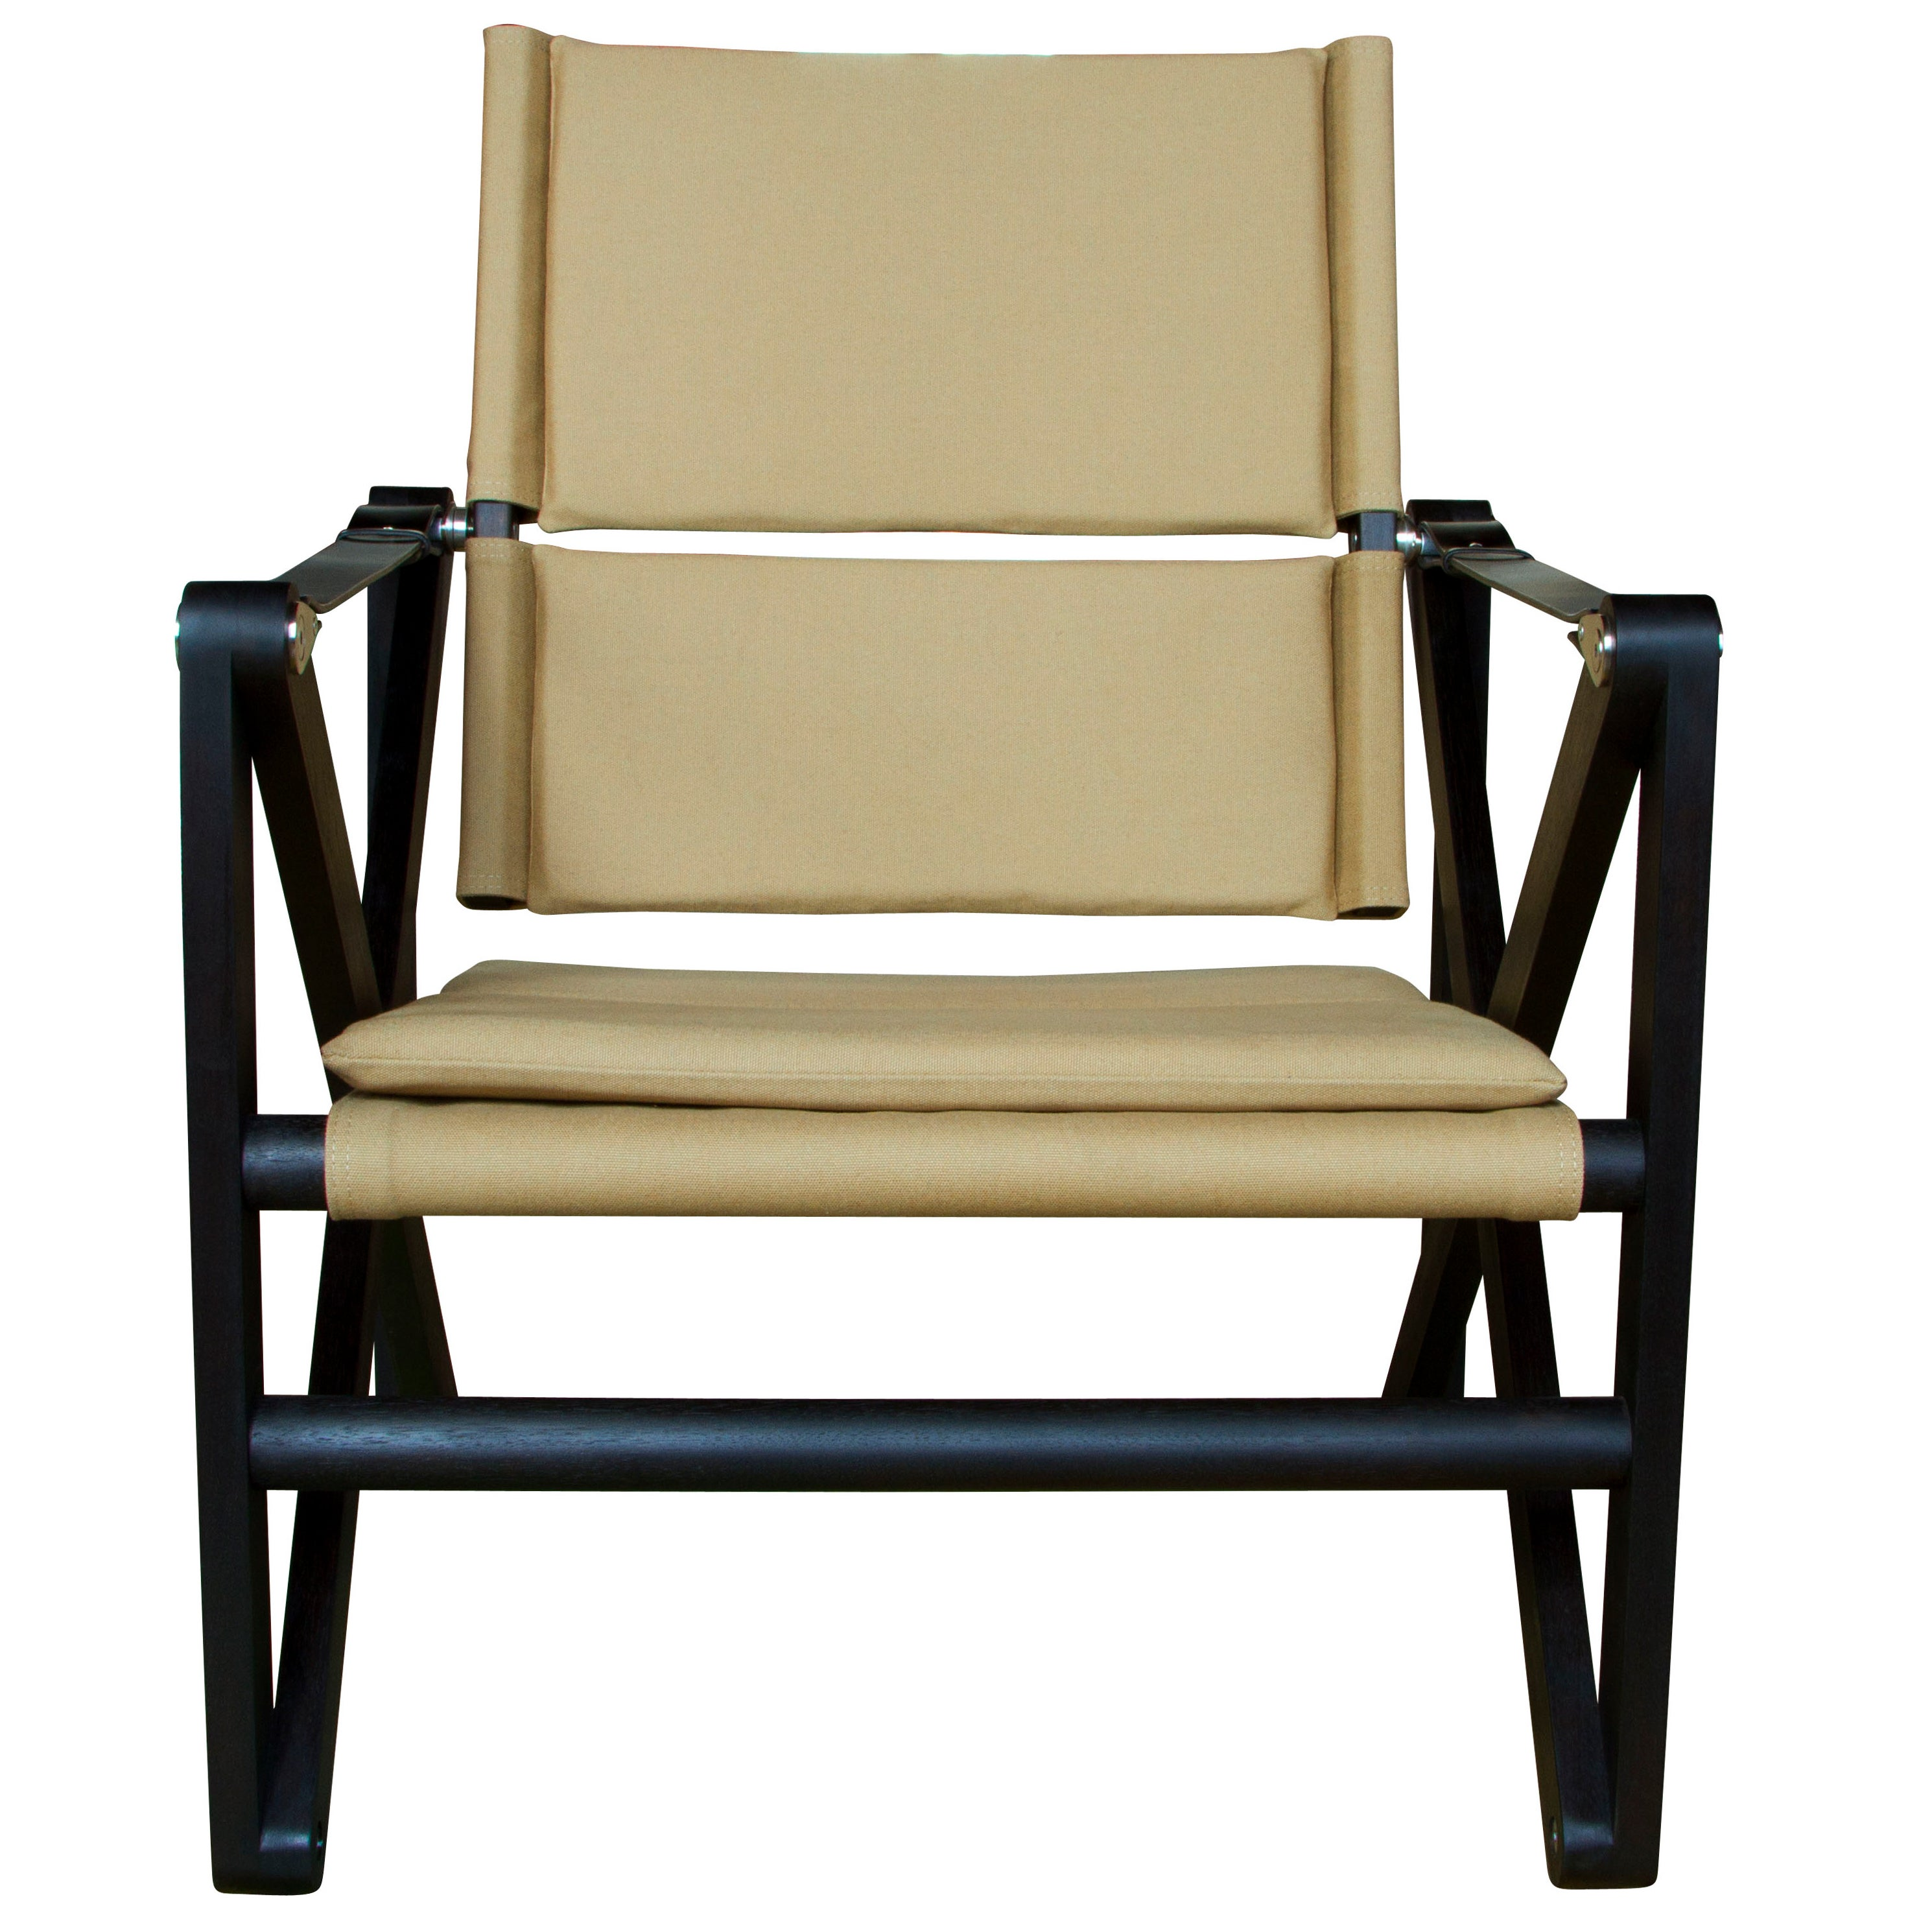 Maclaren Lounge Chair - handcrafted by Richard Wrightman Design